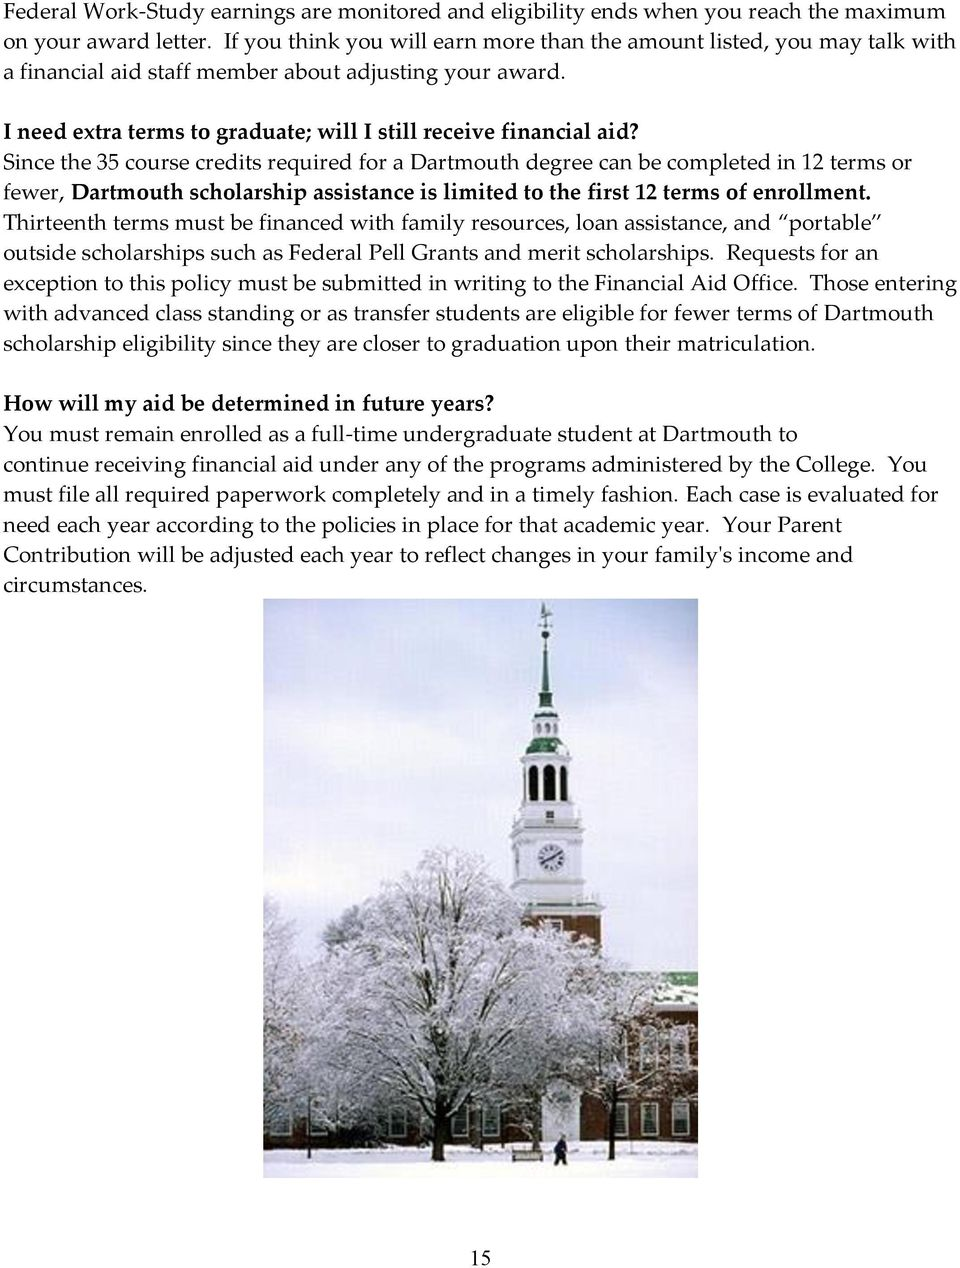 Since the 35 course credits required for a Dartmouth degree can be completed in 12 terms or fewer, Dartmouth scholarship assistance is limited to the first 12 terms of enrollment.